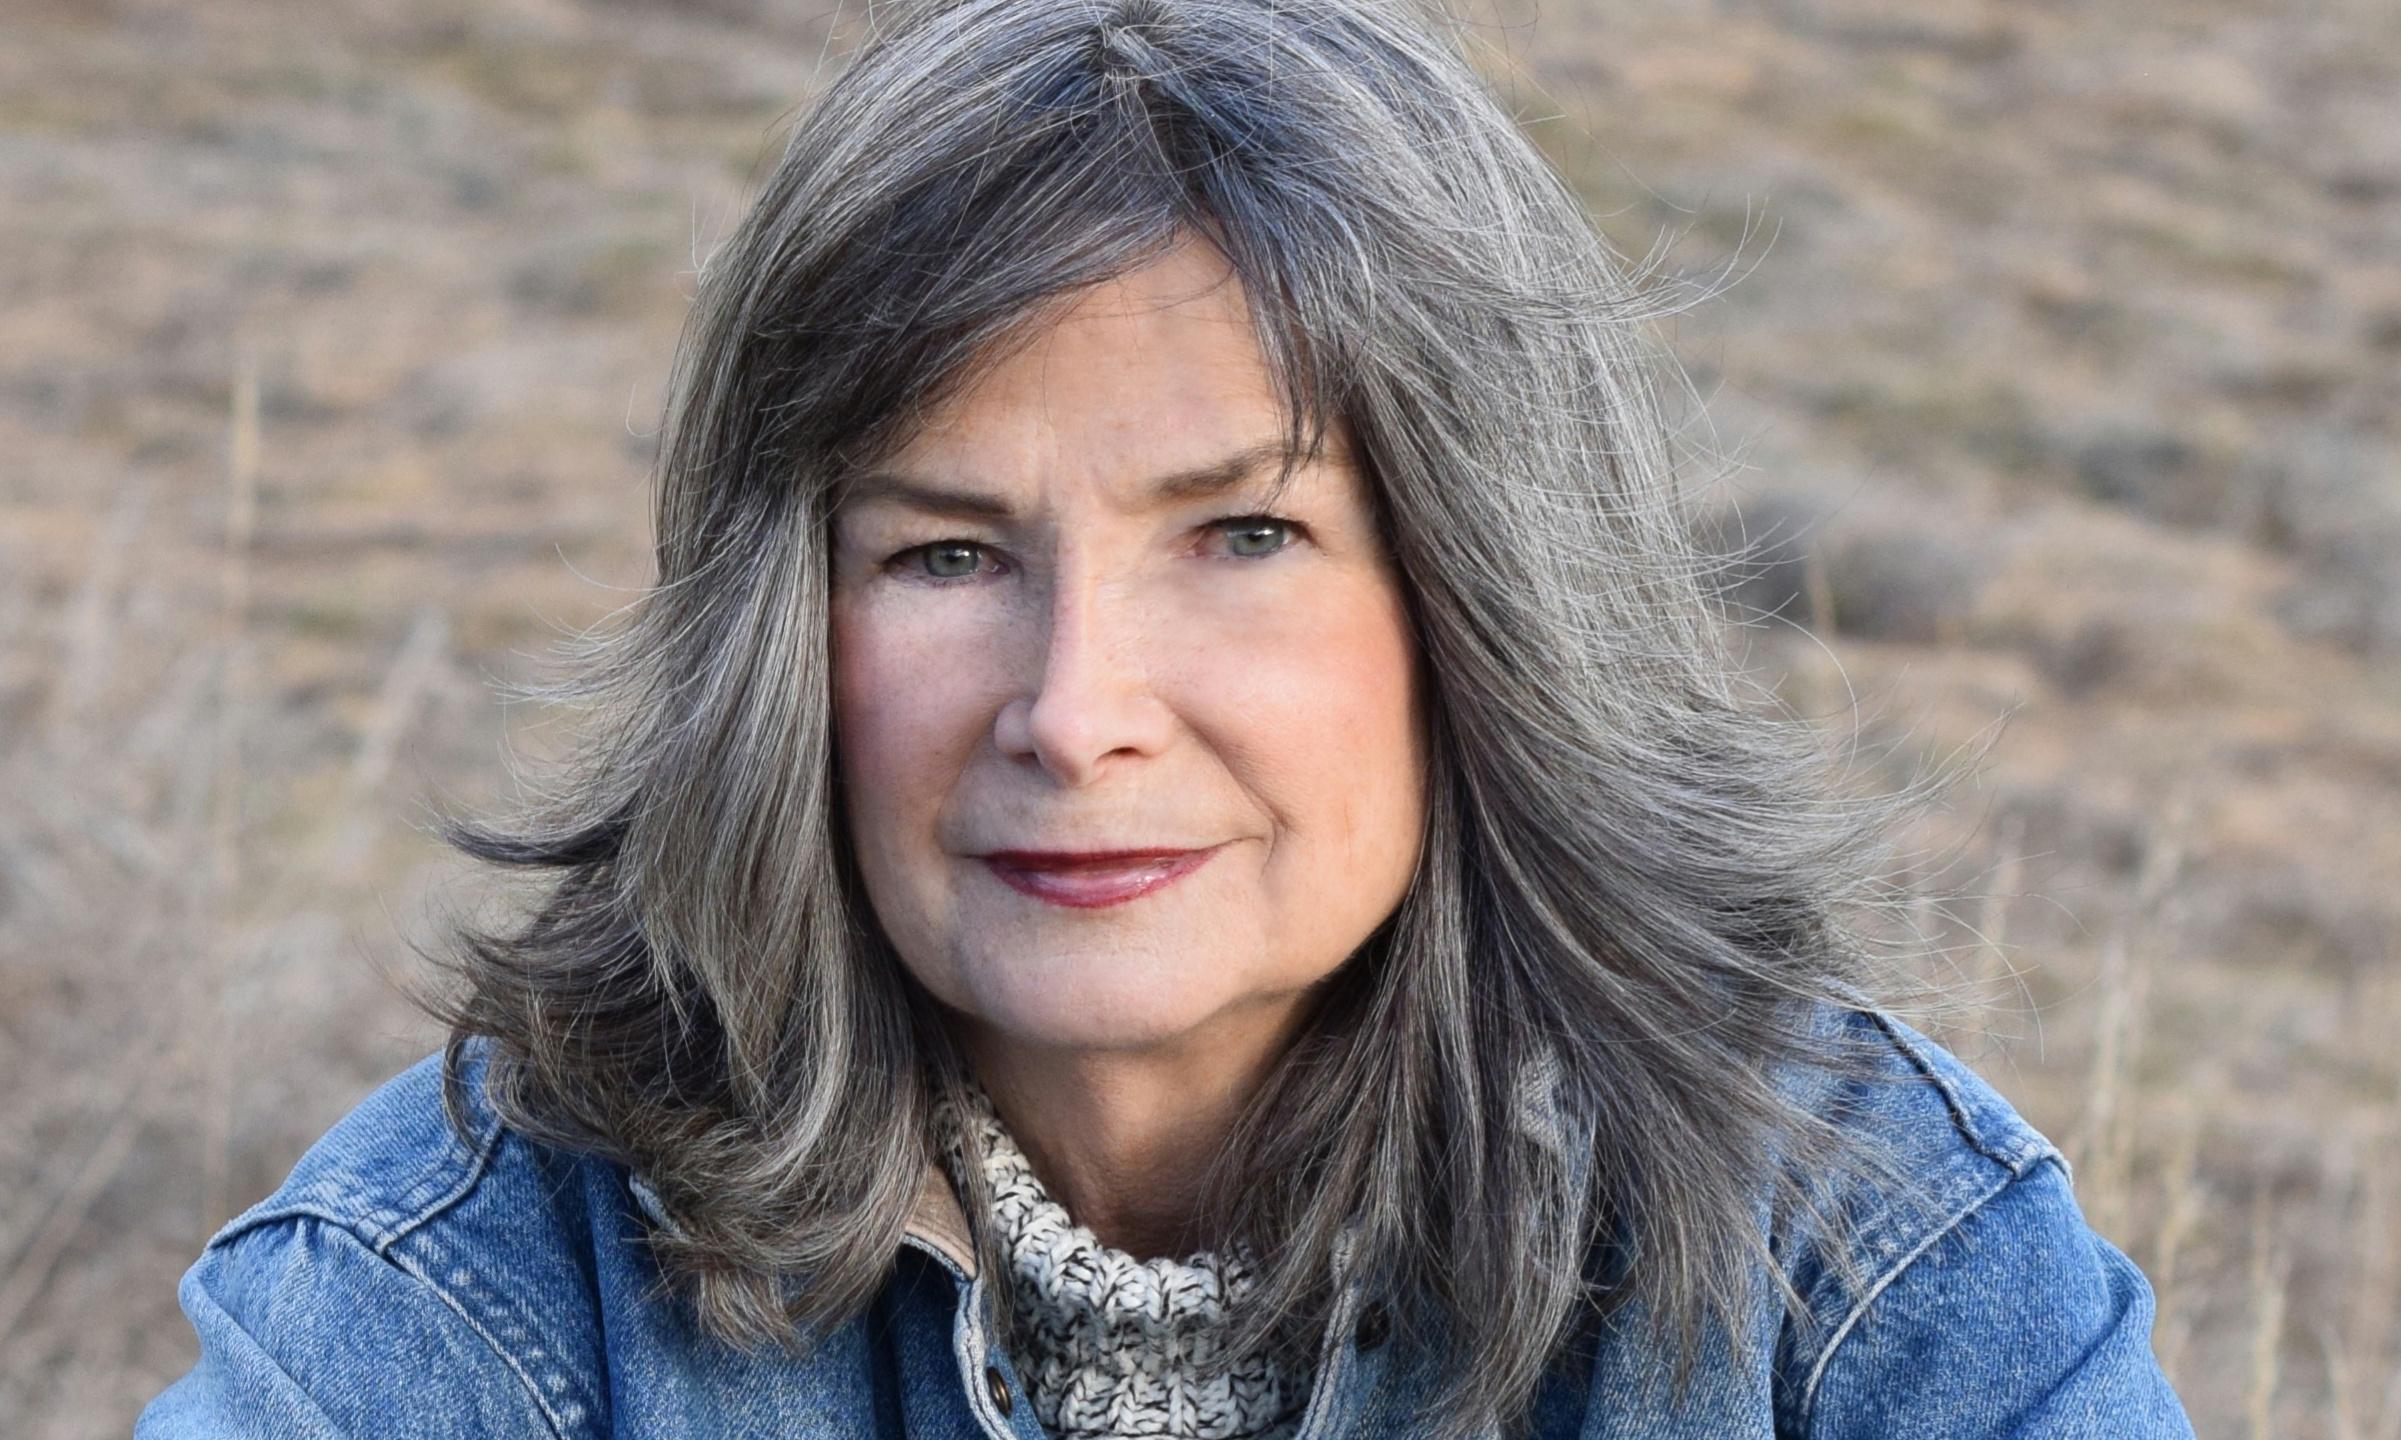 Retired biologist's 'painfully beautiful' debut novel becomes year's surprise hit